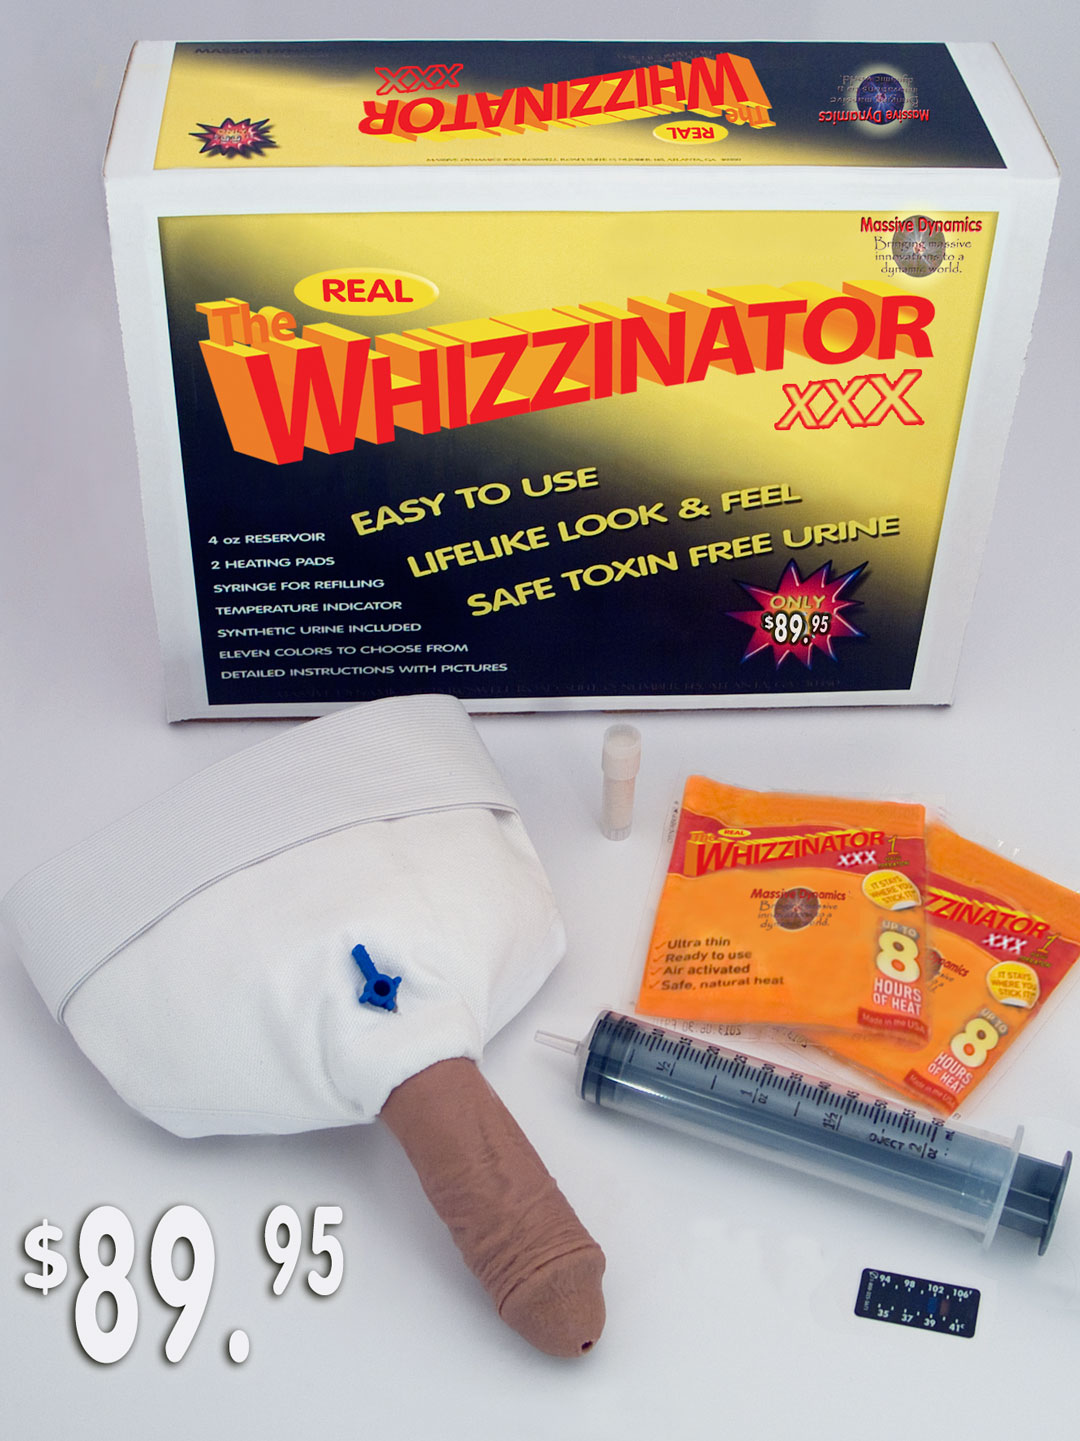 Important Things to Note When Buying a Whizzinator